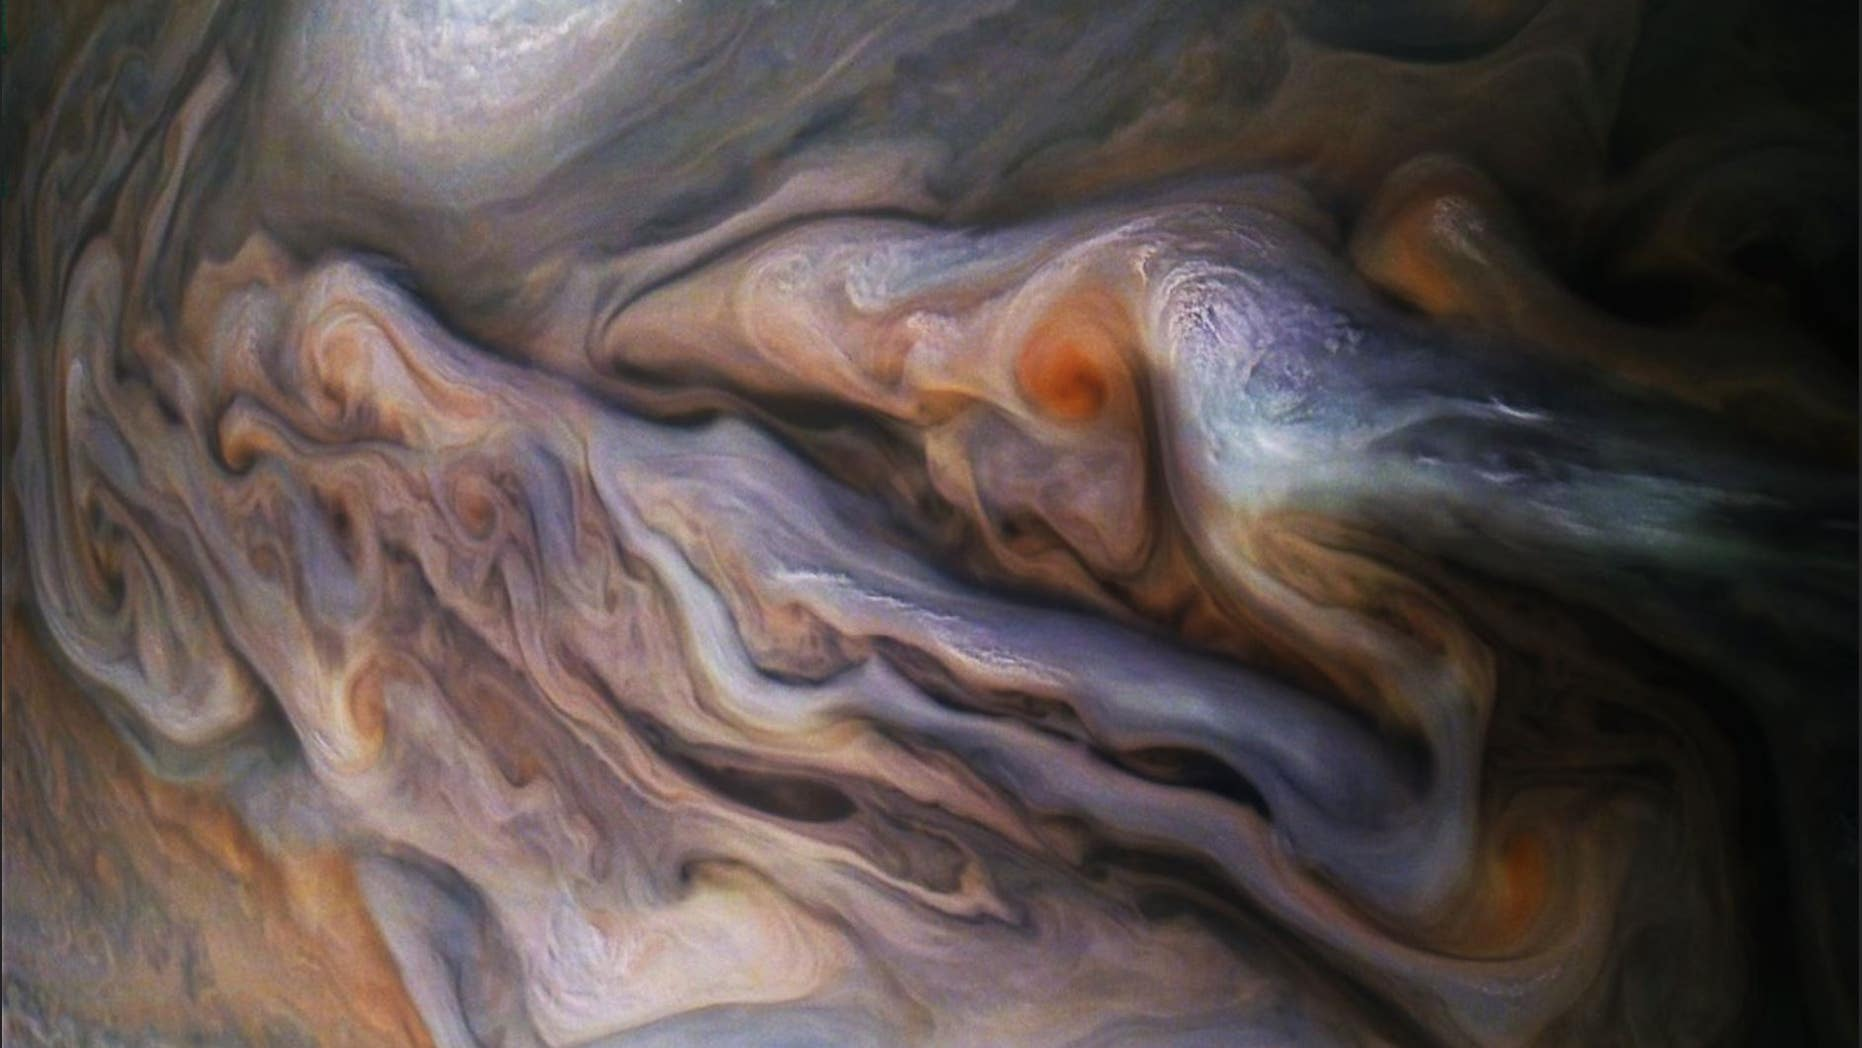 NASA's Juno spacecraft finds a mysterious creature in Jupiter's cloud on October 29, 2018.